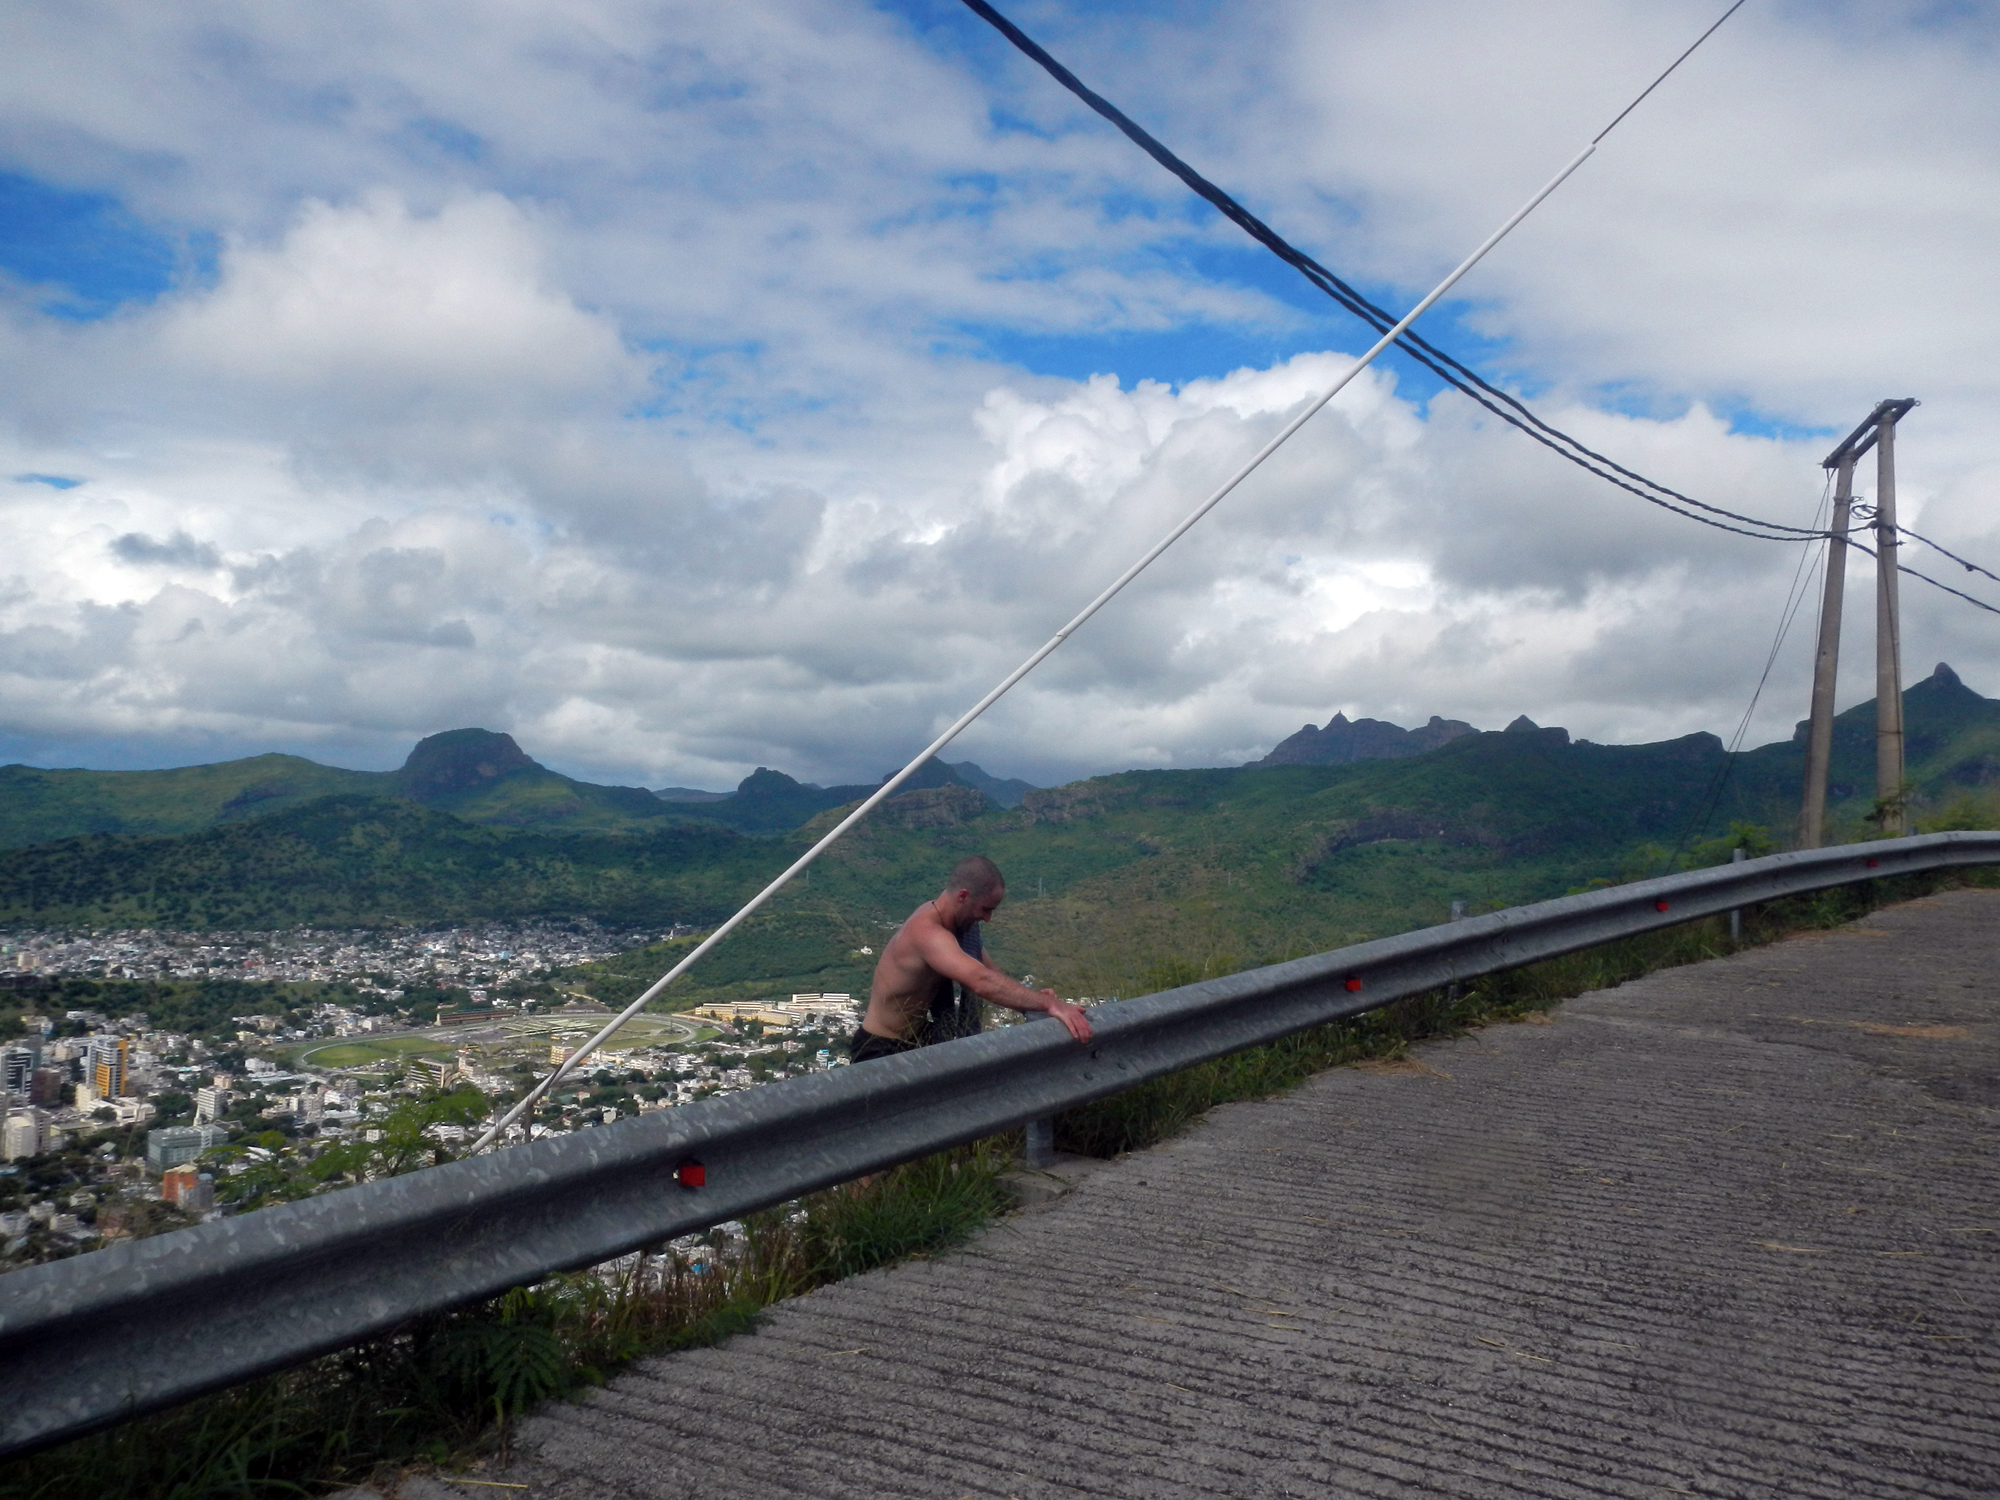 mauritius, a hike and a lunch